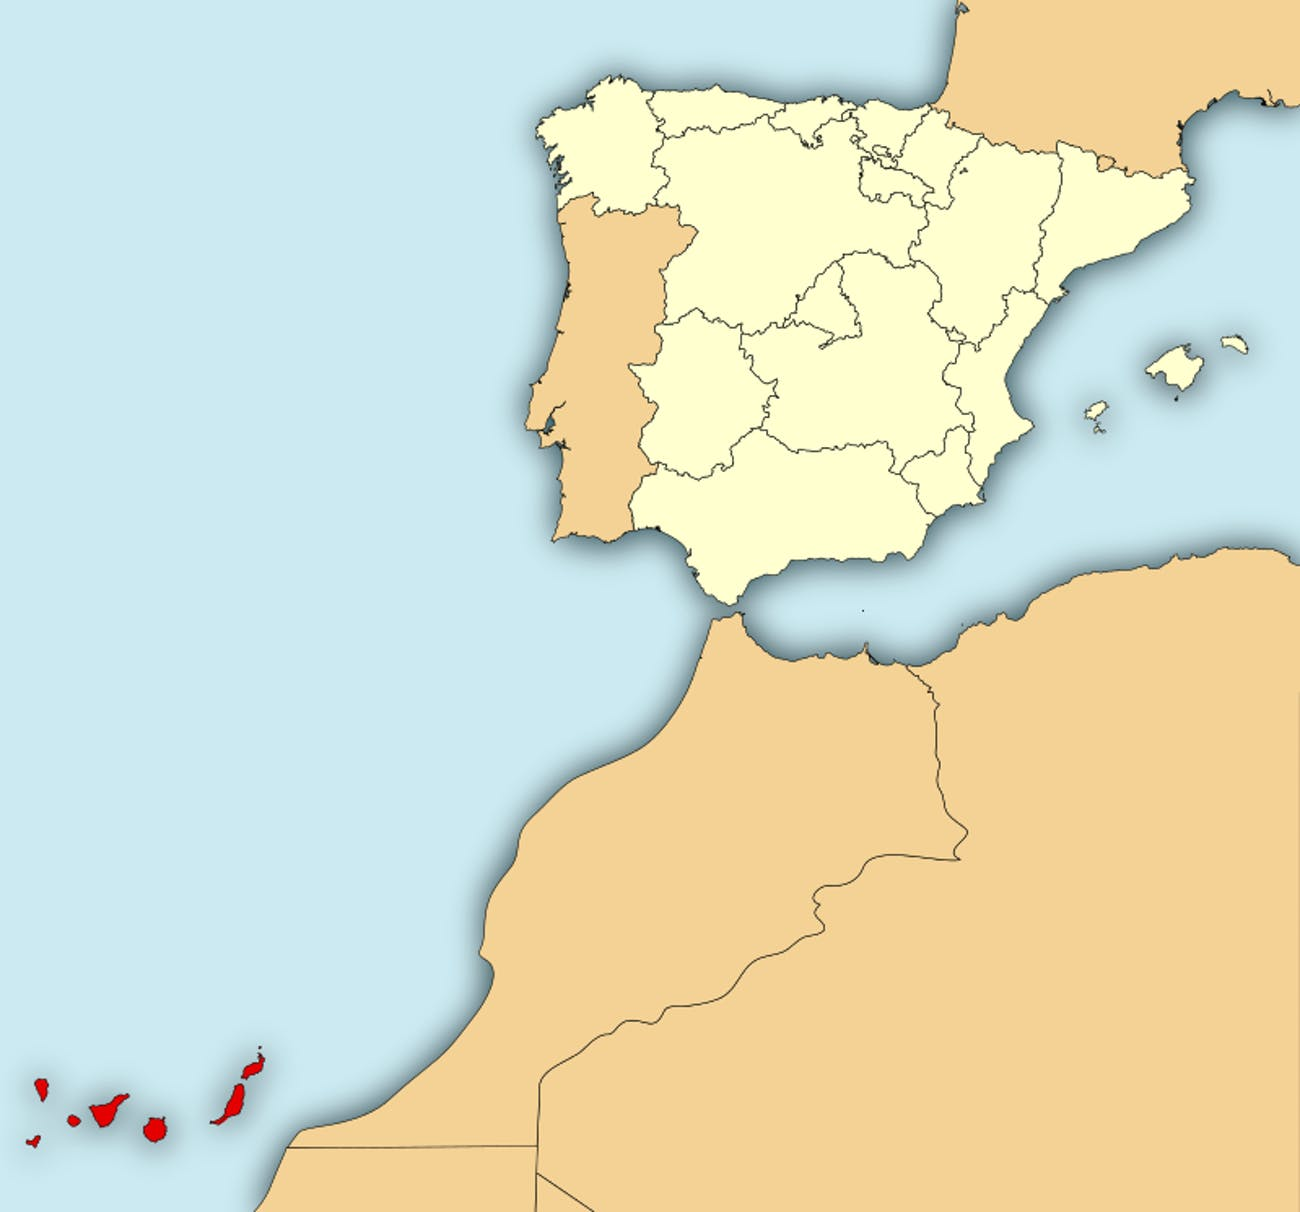 Map Of Spain And Its Islands.Esa Is Sending Its Astronauts To The Canary Islands To Train For